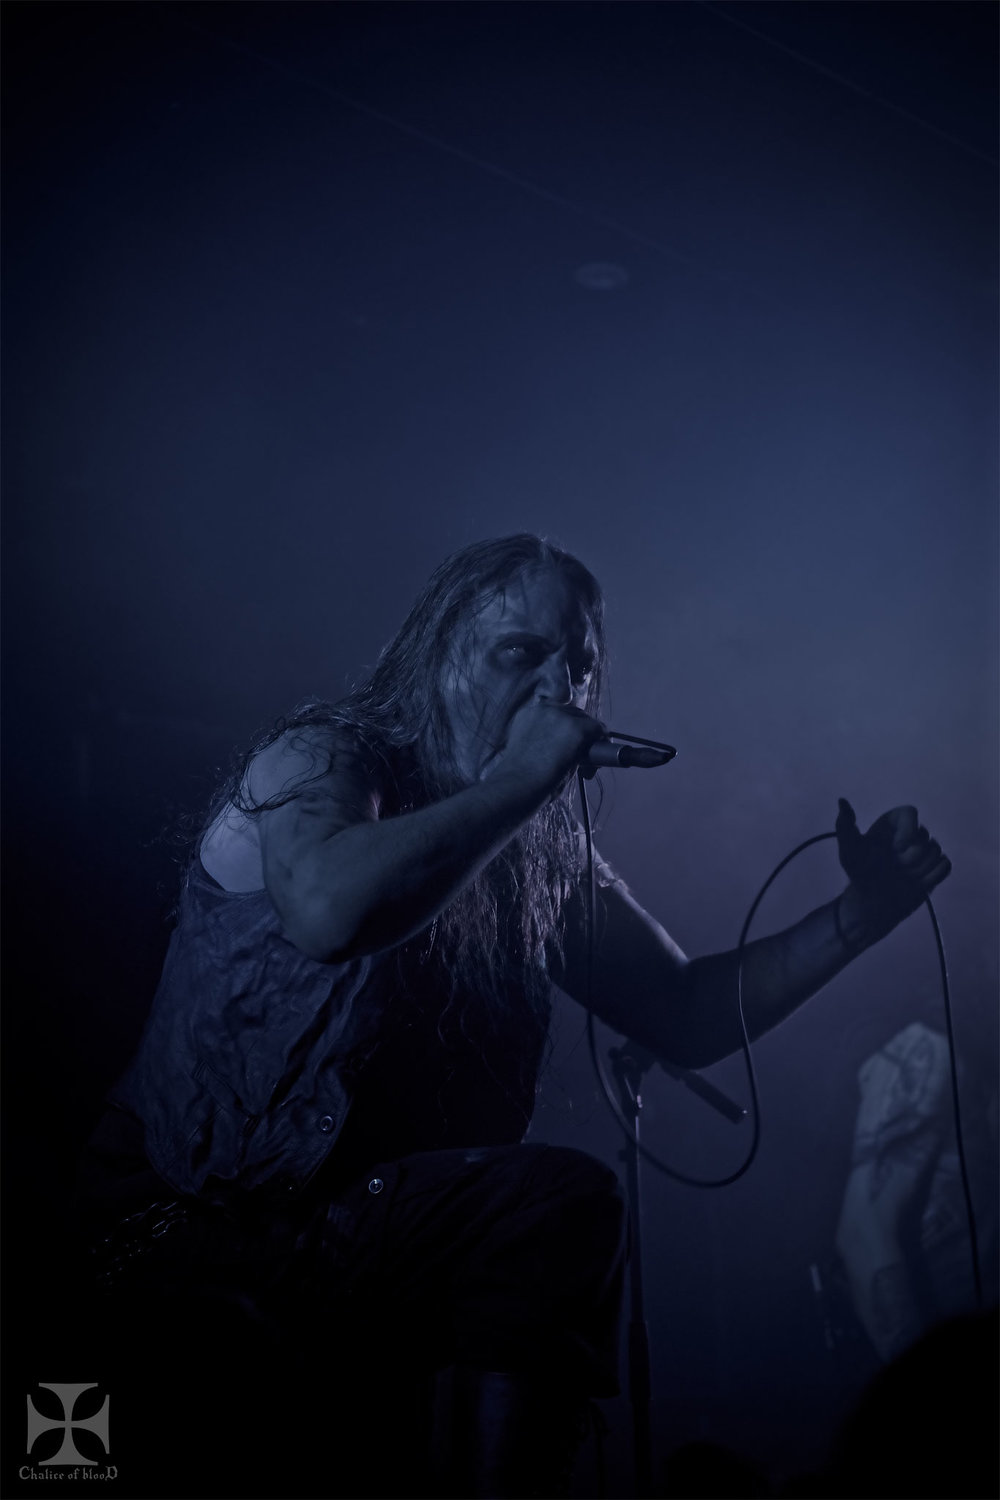 Marduk---62-watermarked.jpg